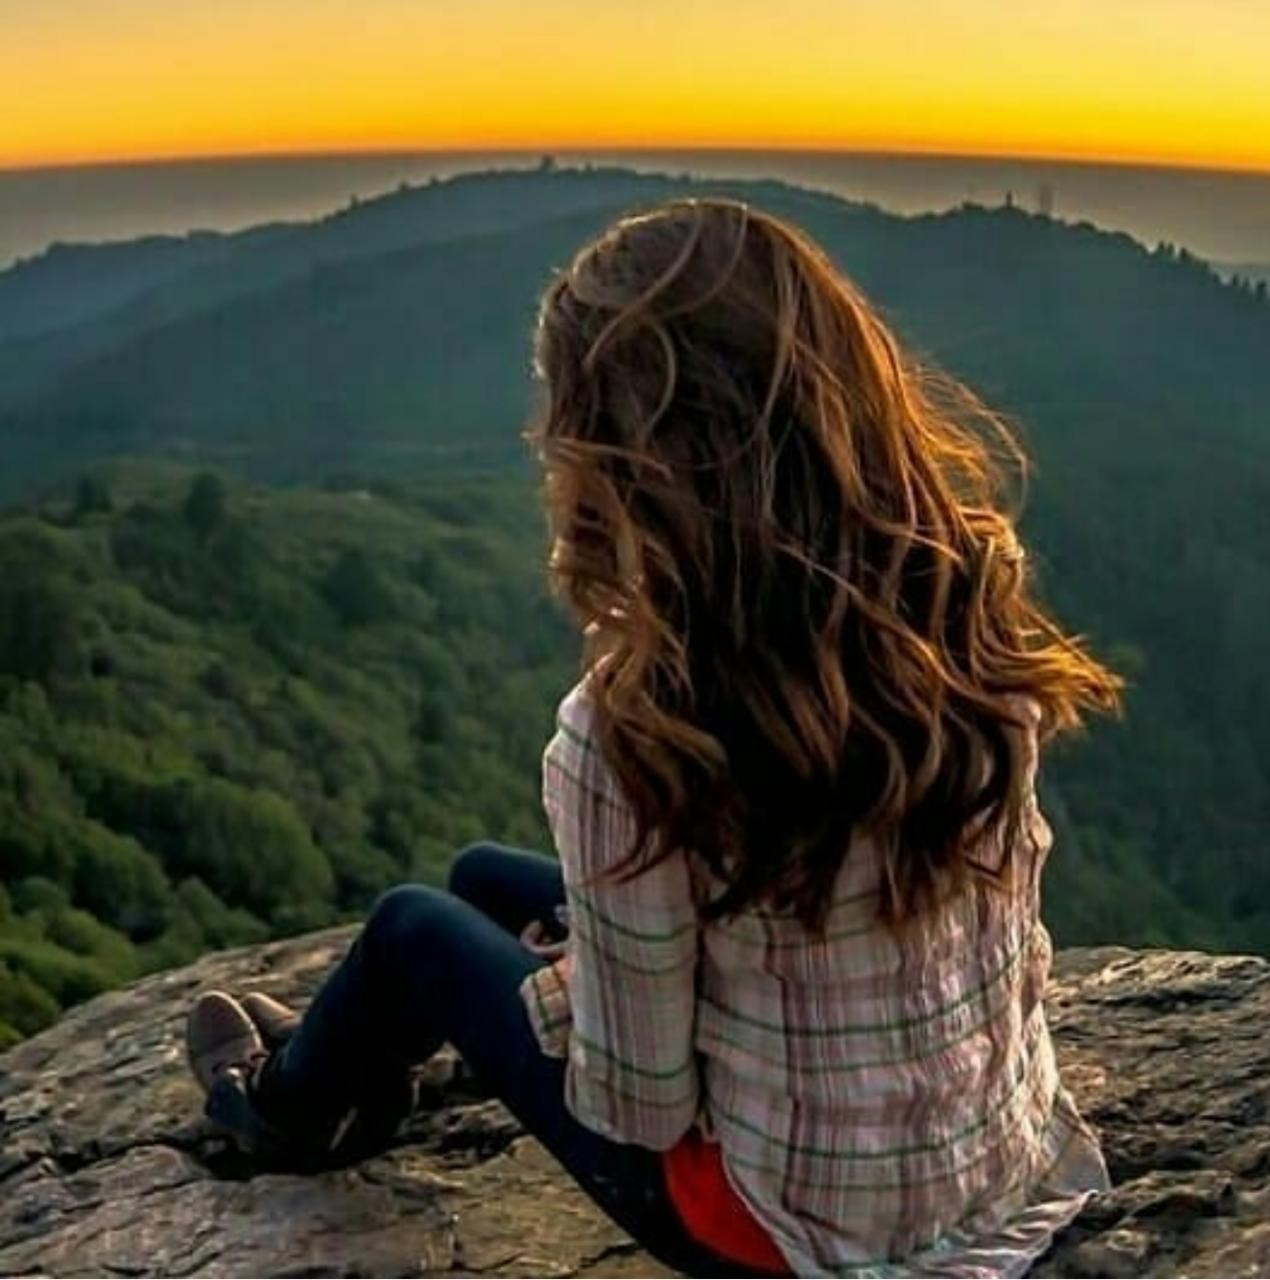 Alone Girl Whatsapp DP Images Photos Wallpaper Pictures